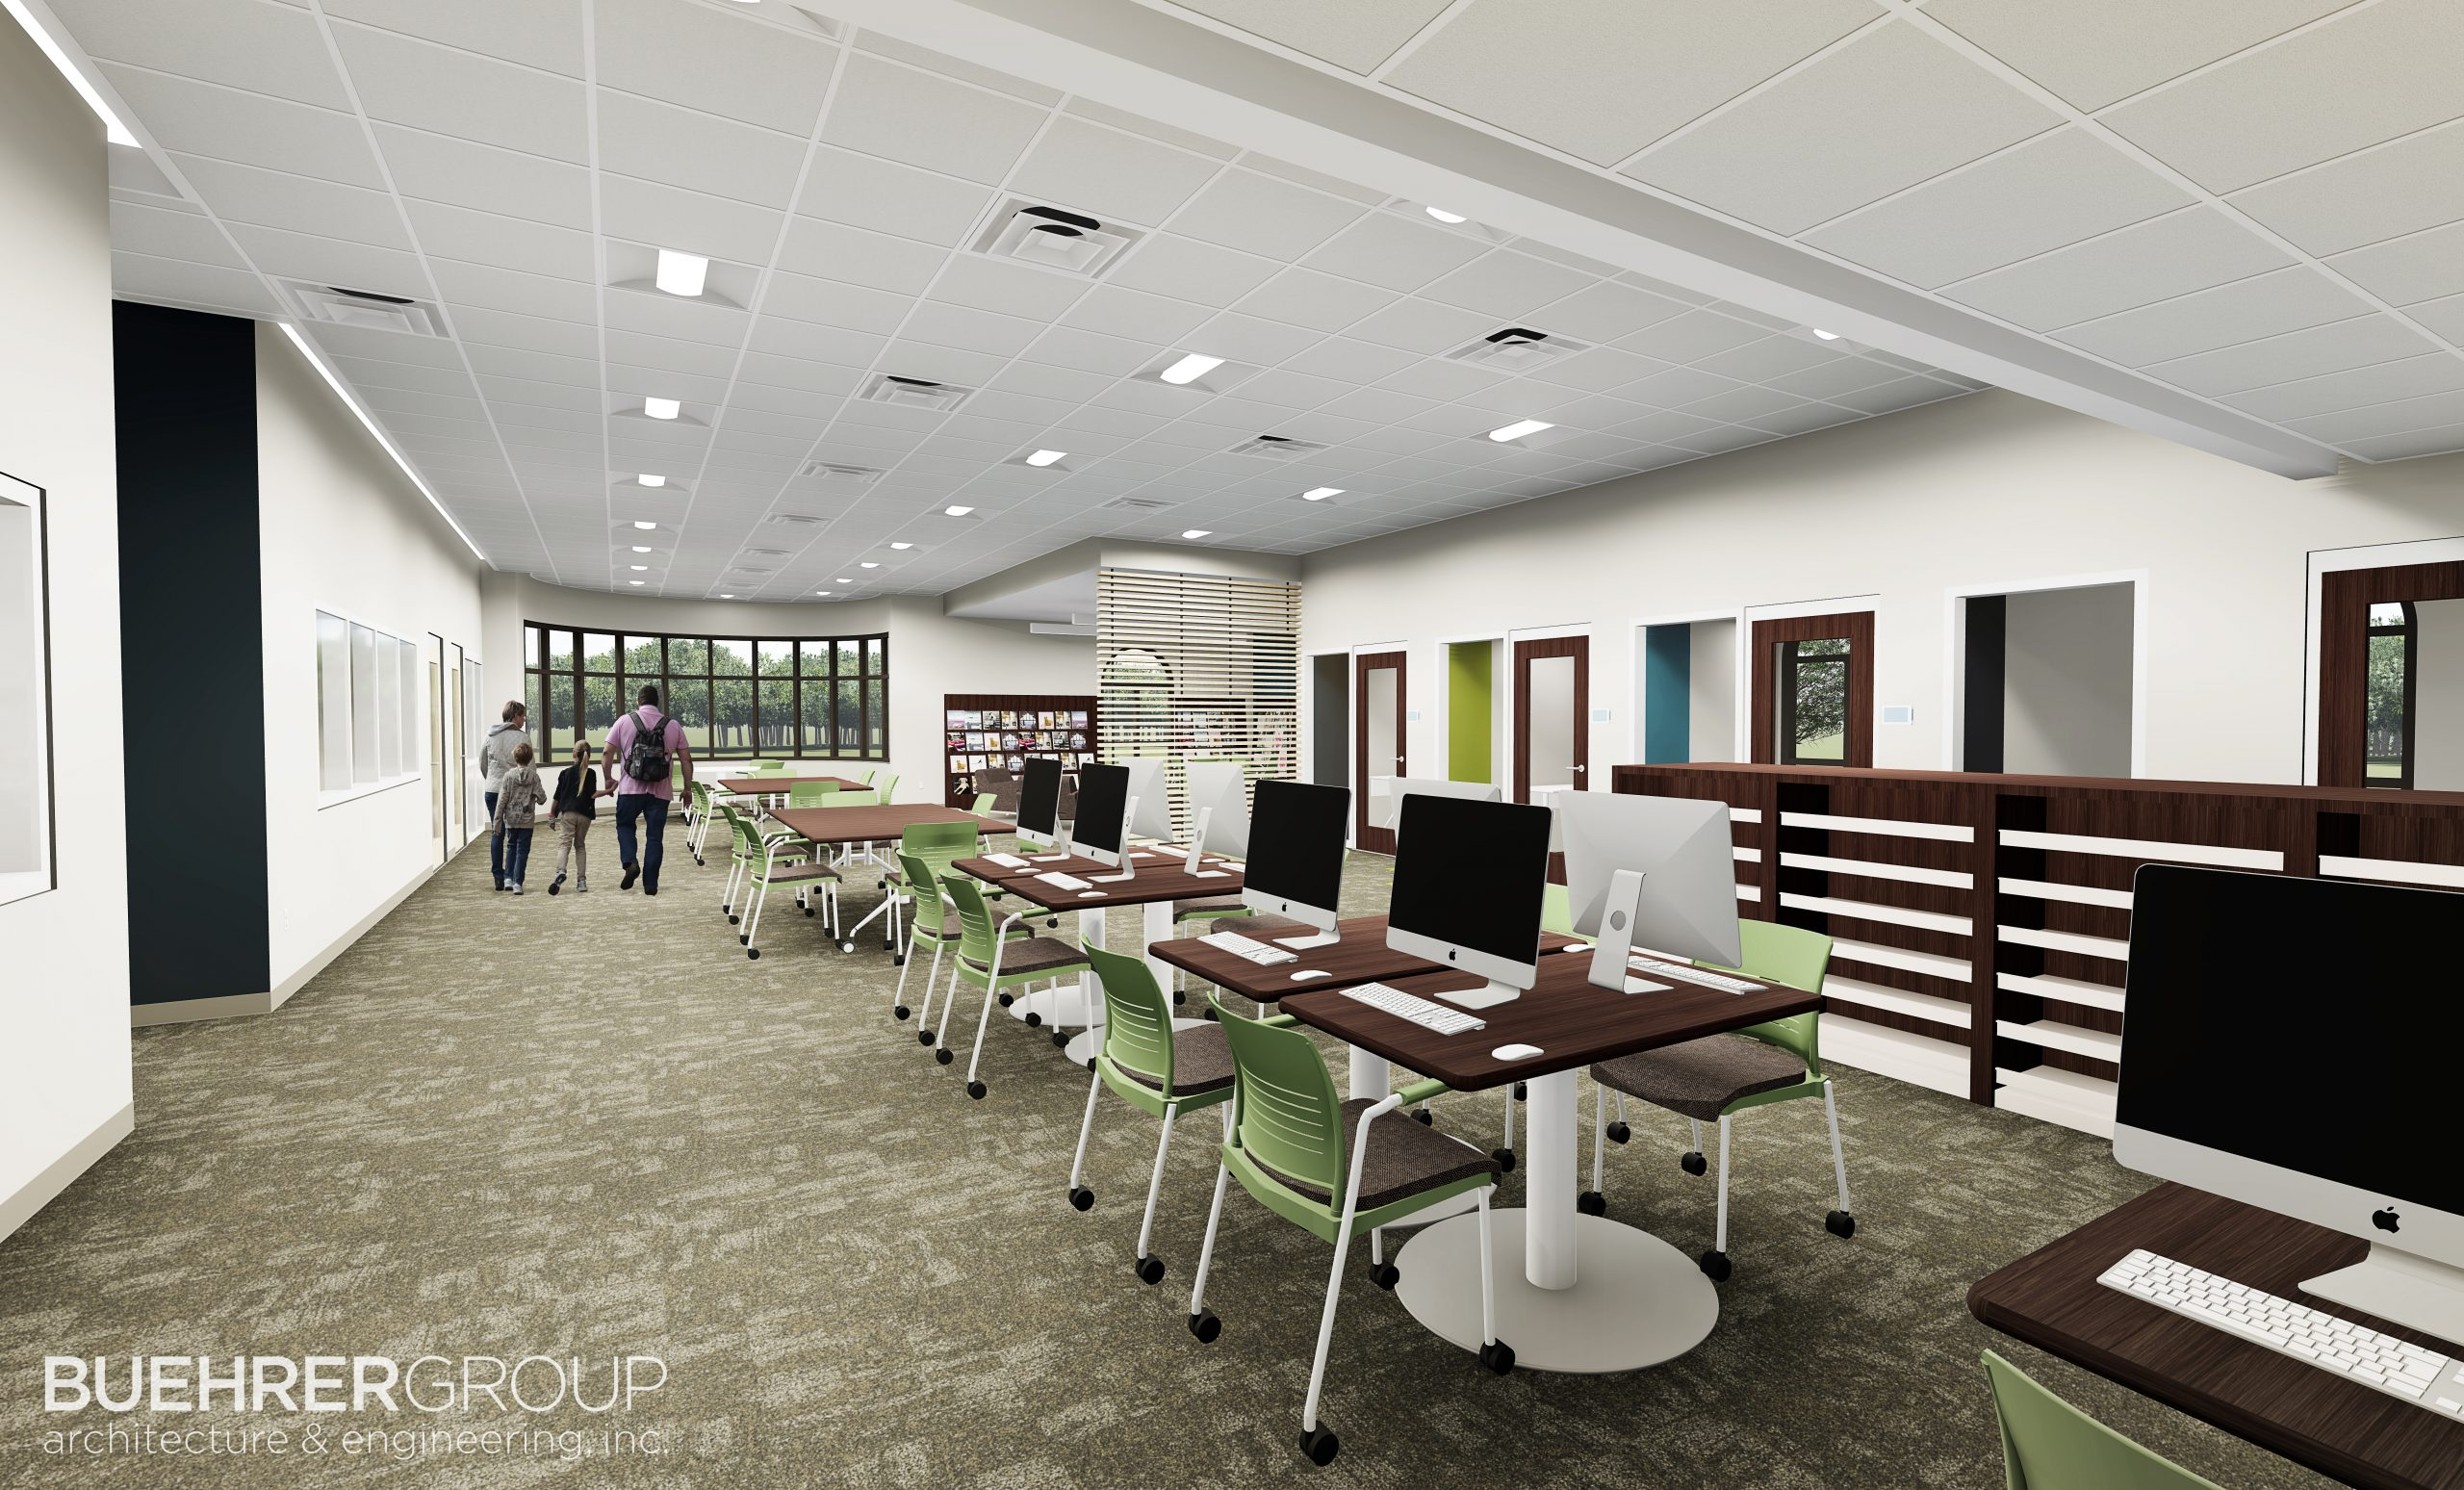 Concept of Birchard library interior renovation